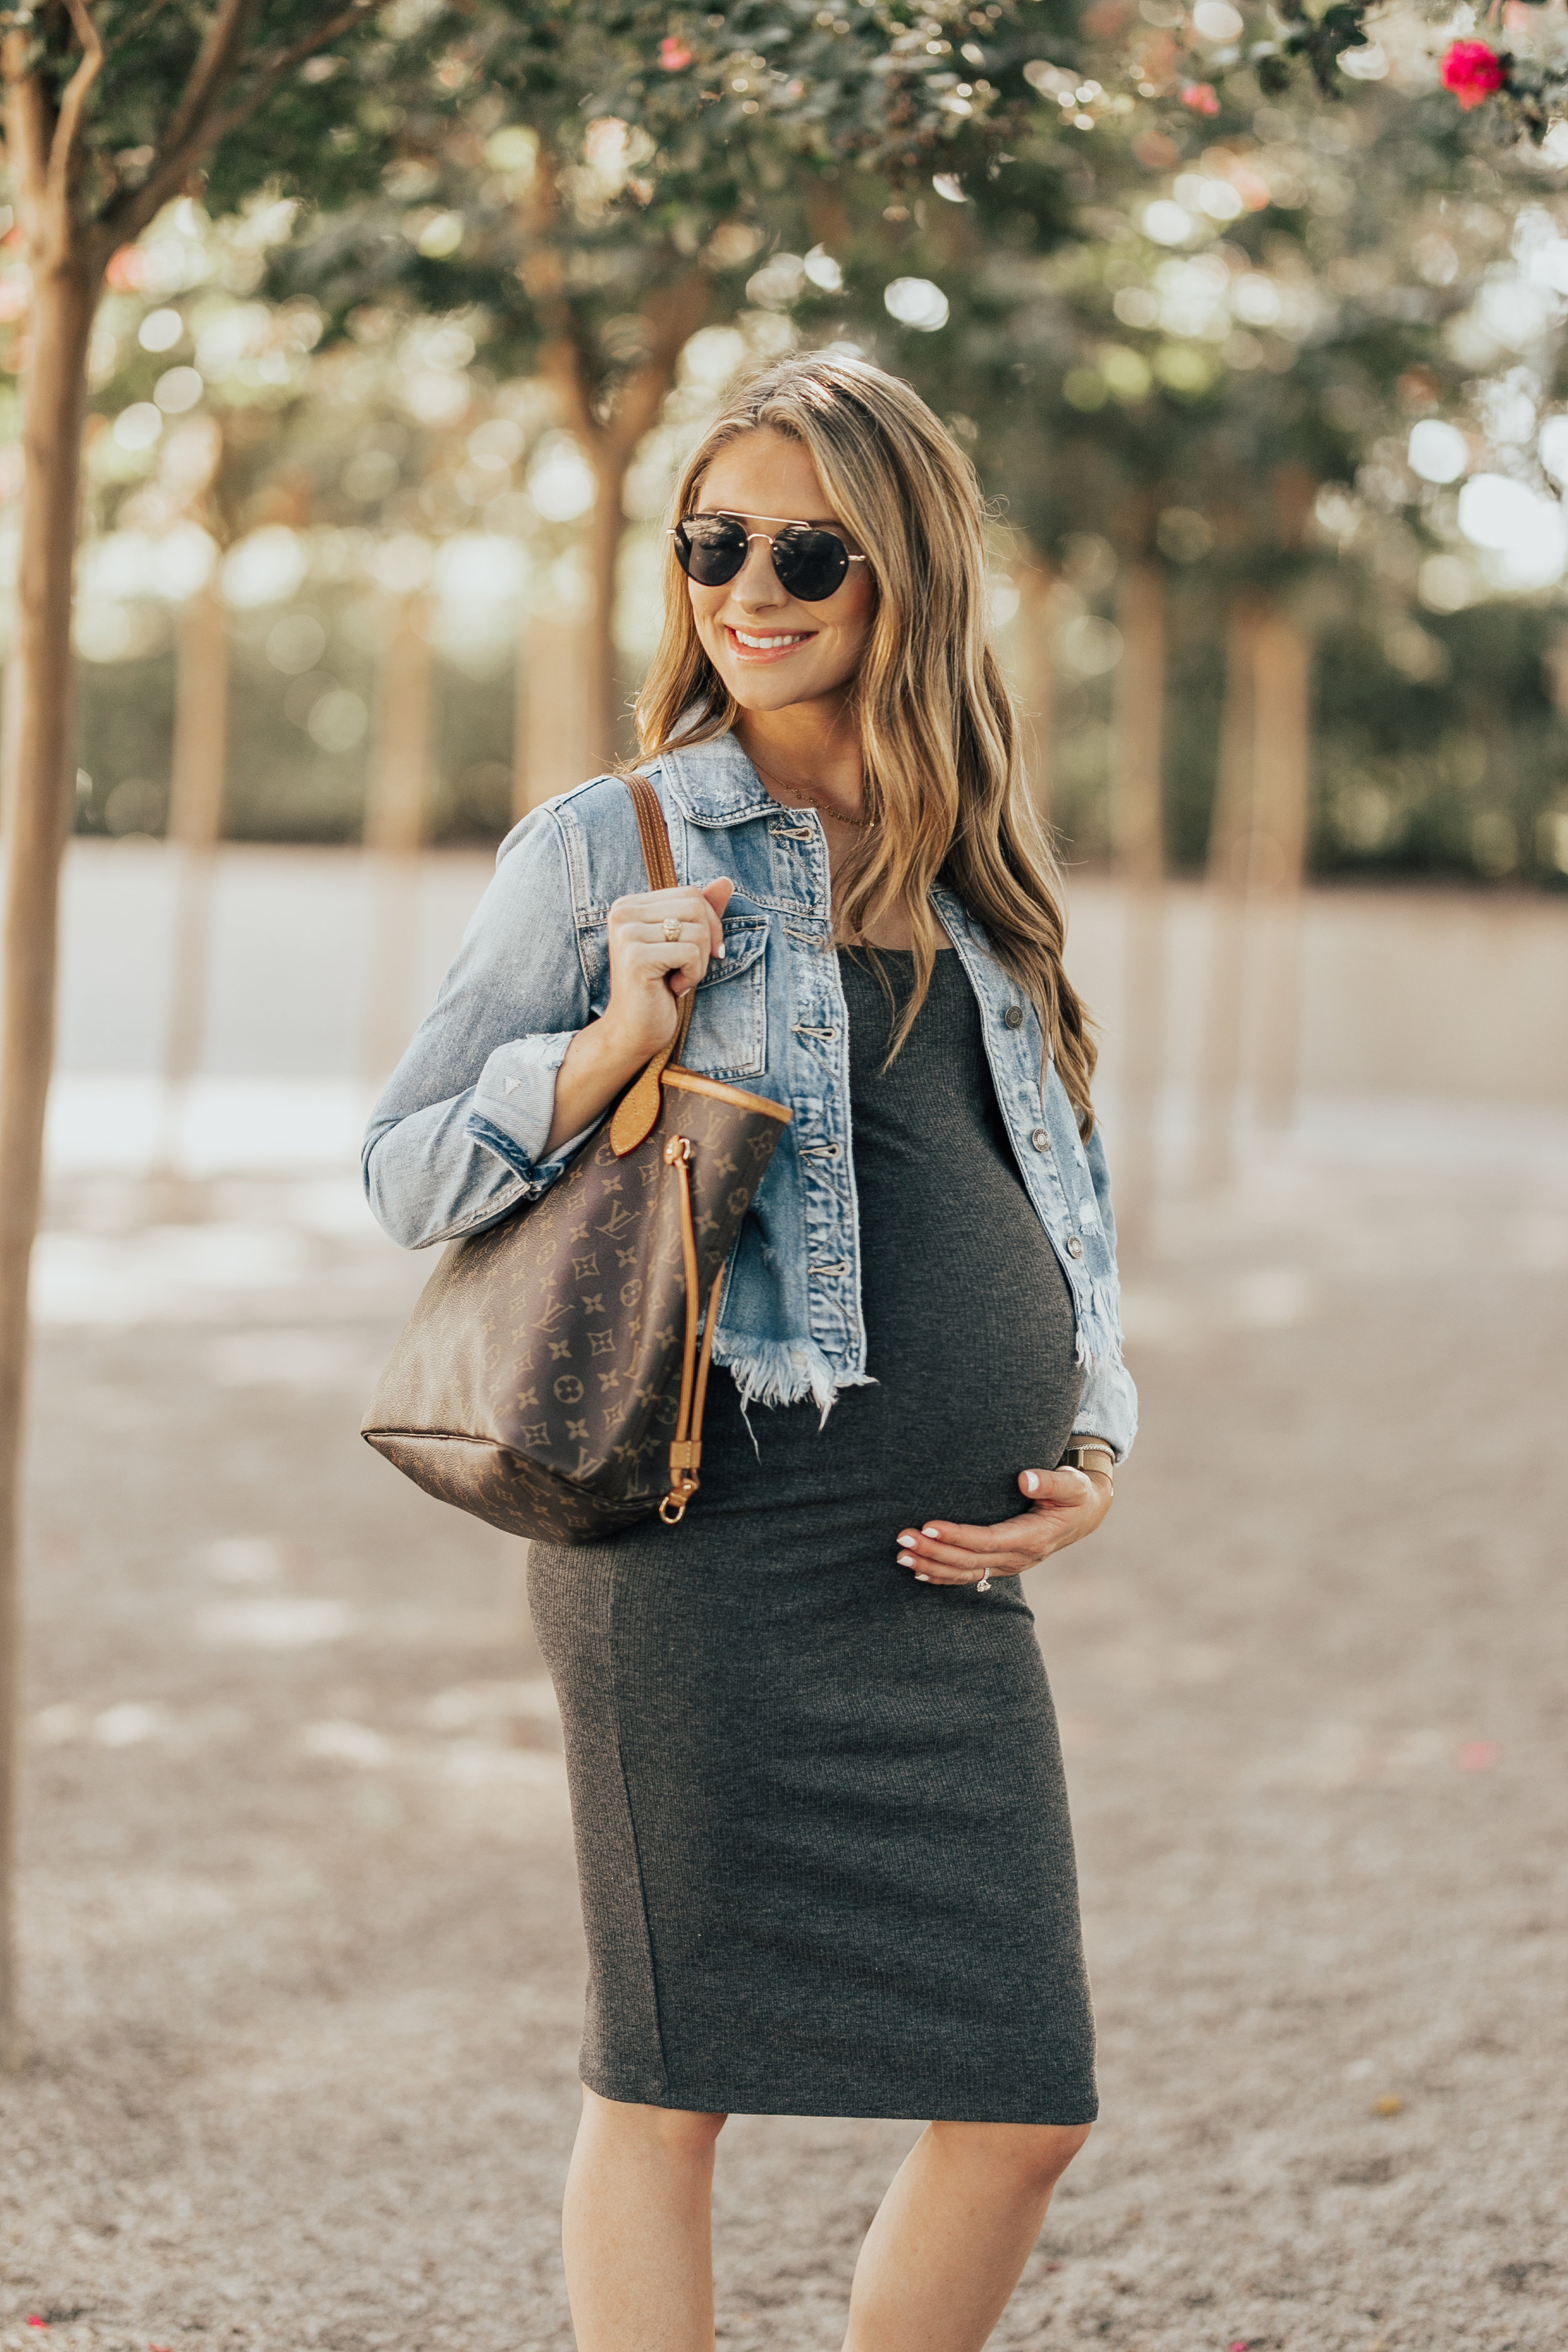 Denim Jacket + Jersey Dress - Maternity Style